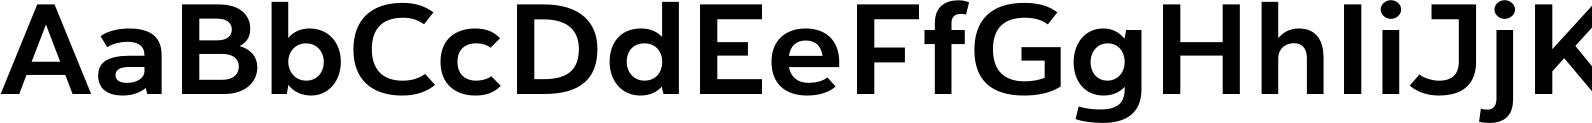 Yorkten Ext Medium Font